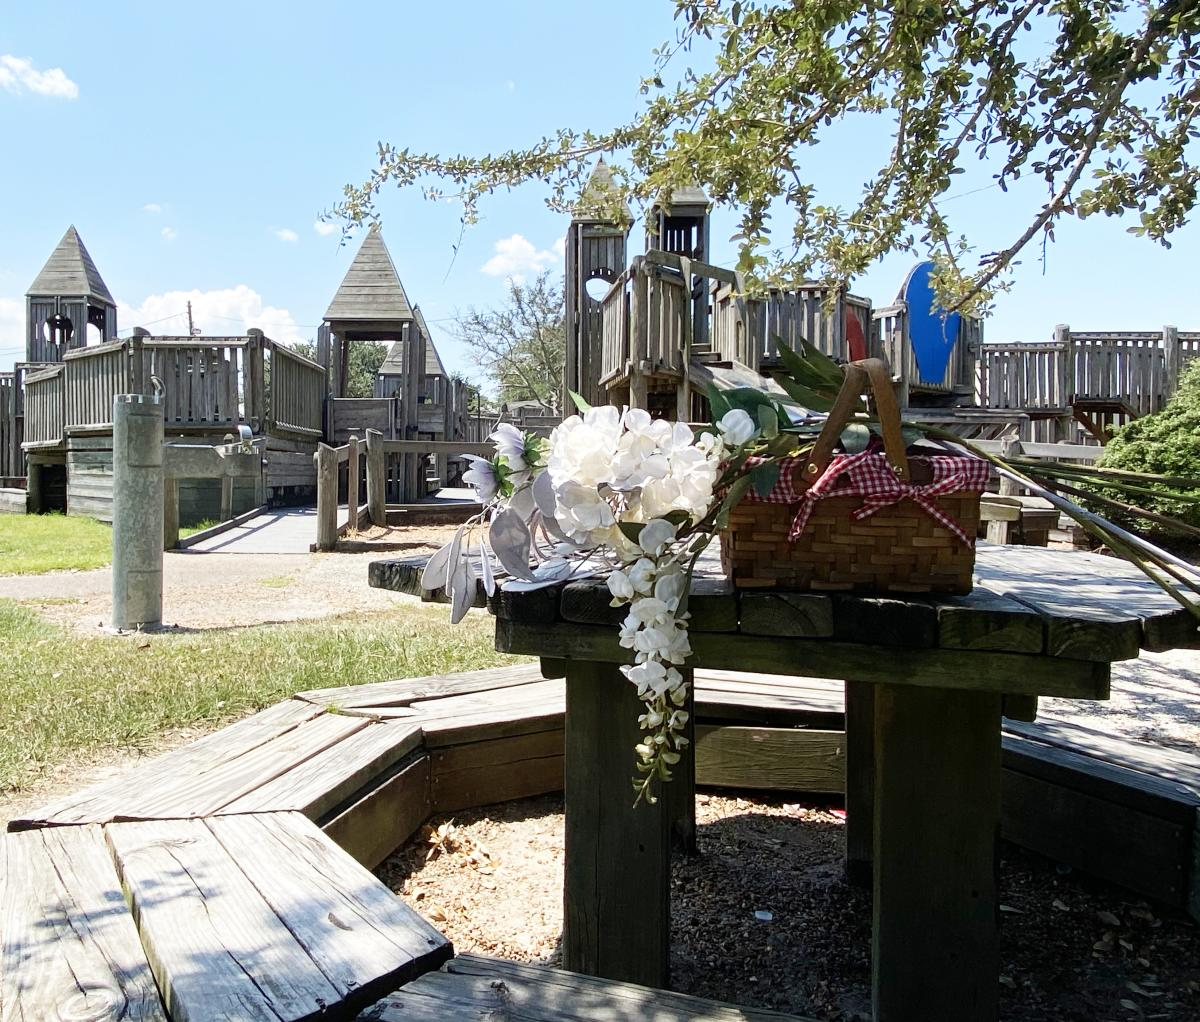 The playground at Central Park in Beaumont is the perfect picnic spot for families with children.